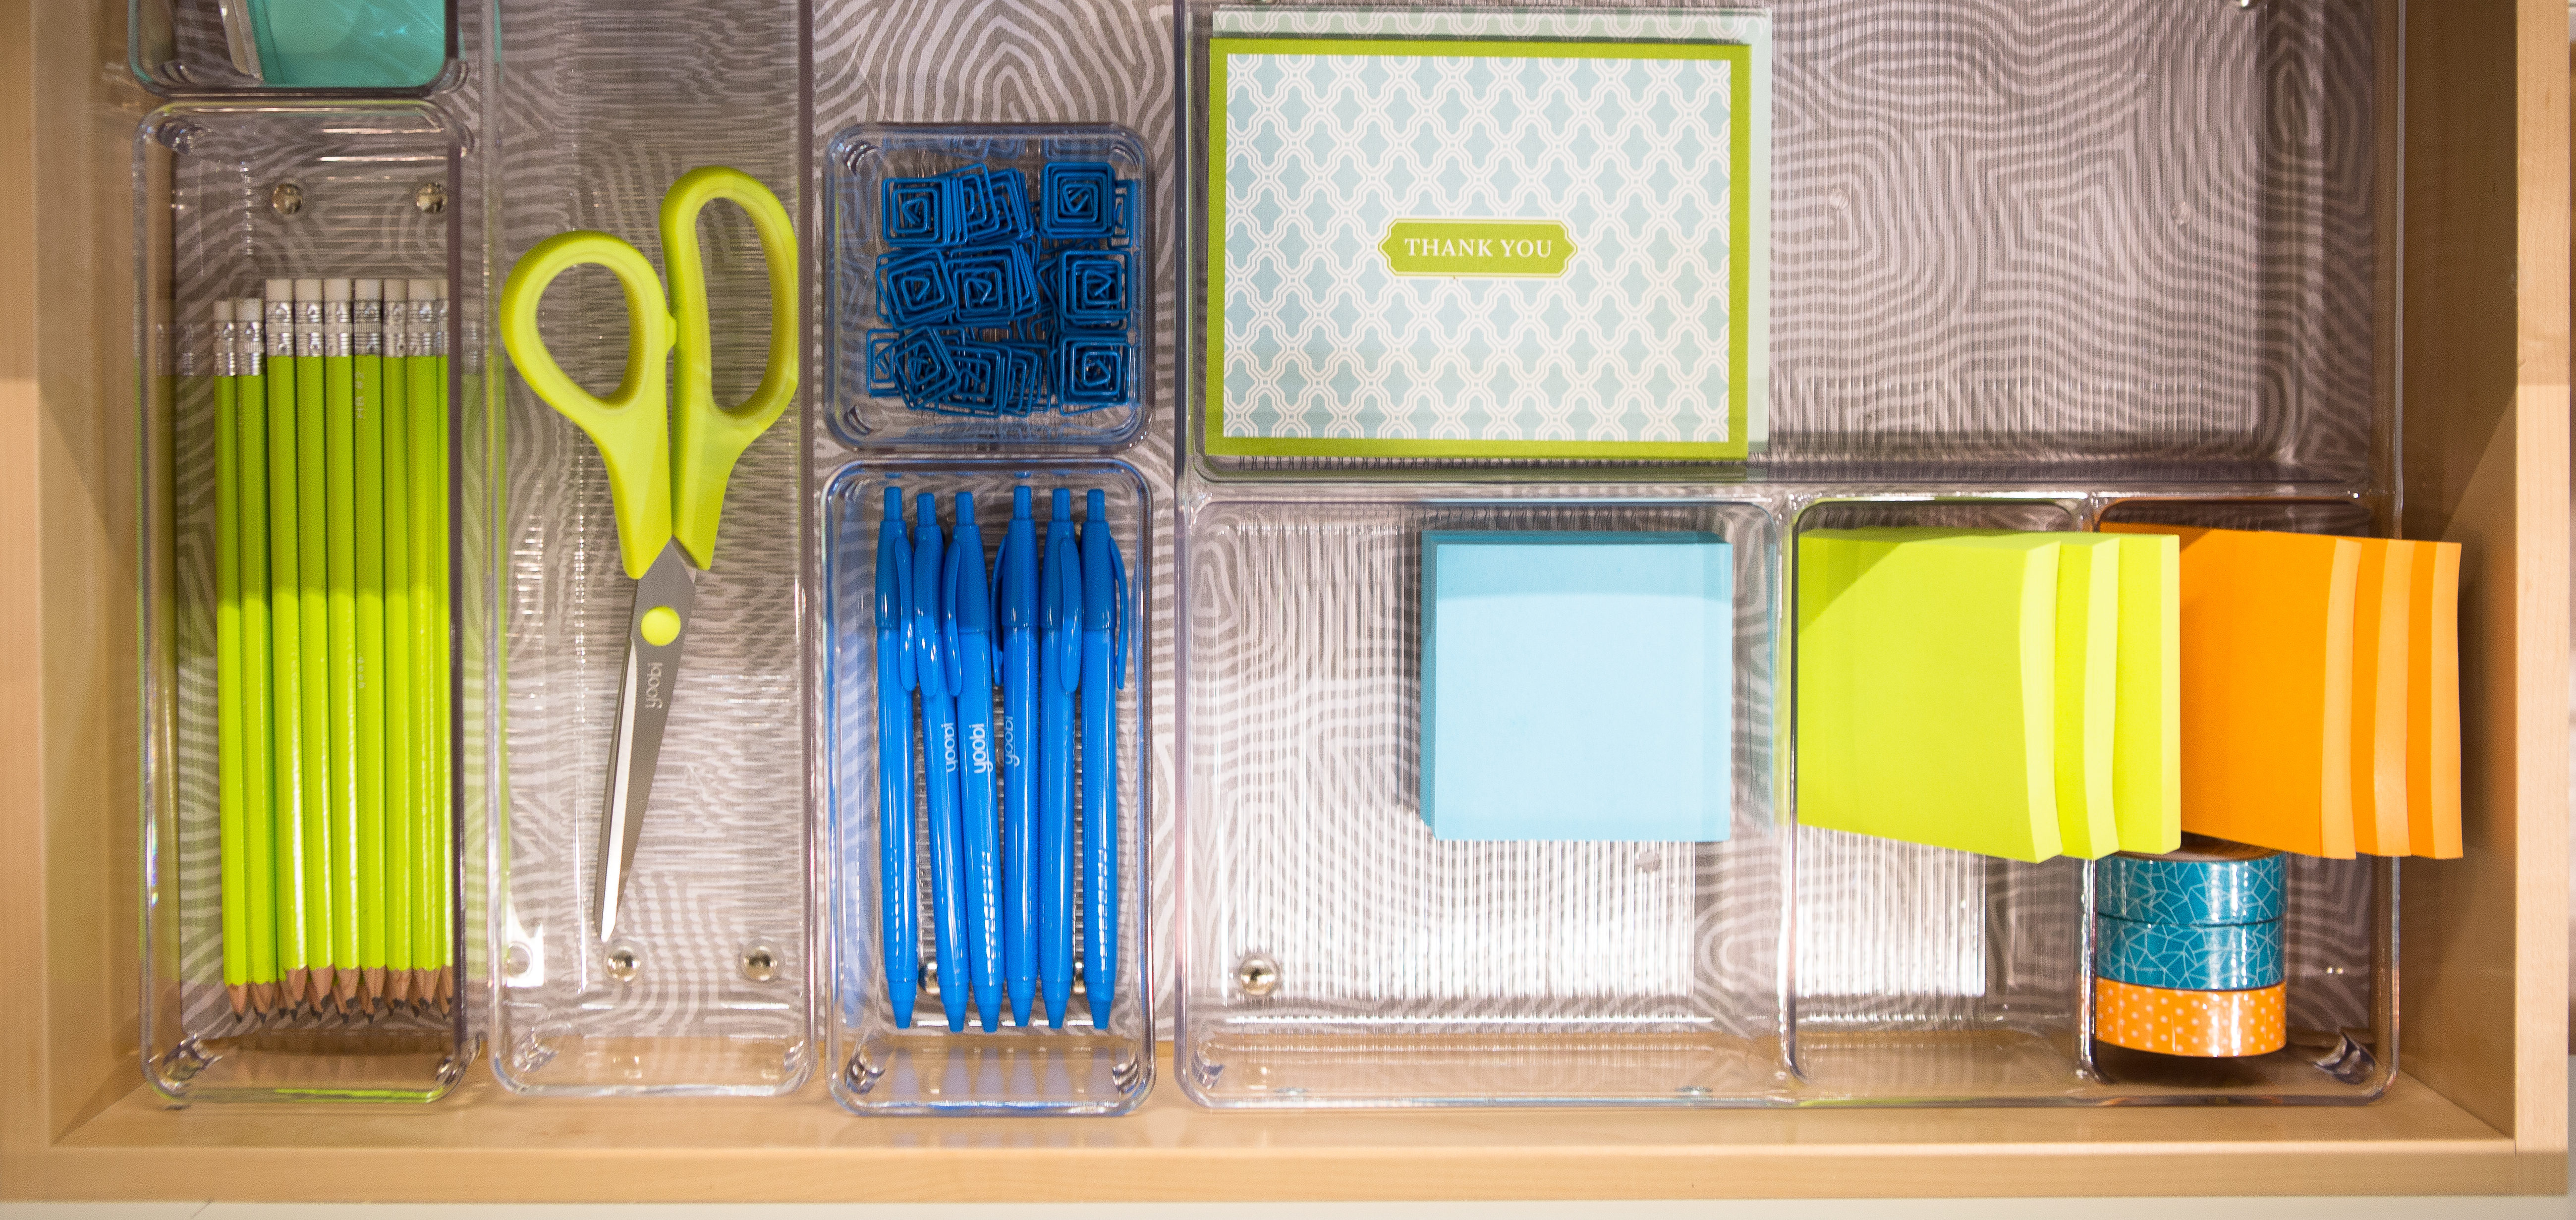 organized office drawer with sticky notes and scissors